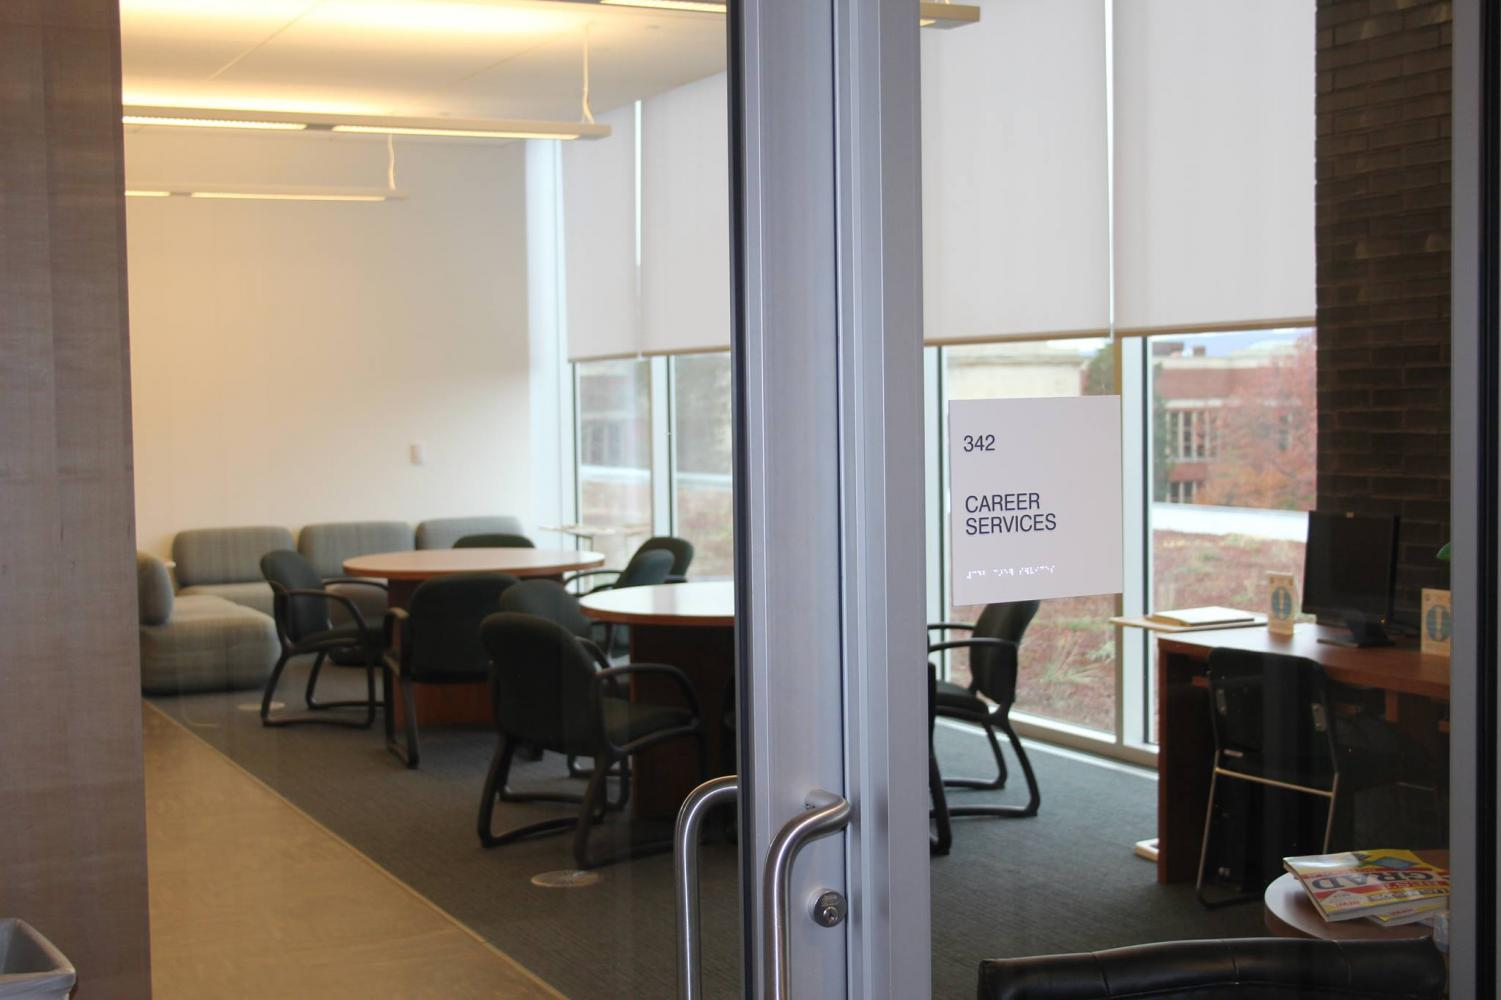 The new Career Services department is located in room 342 of the Learning Commons.